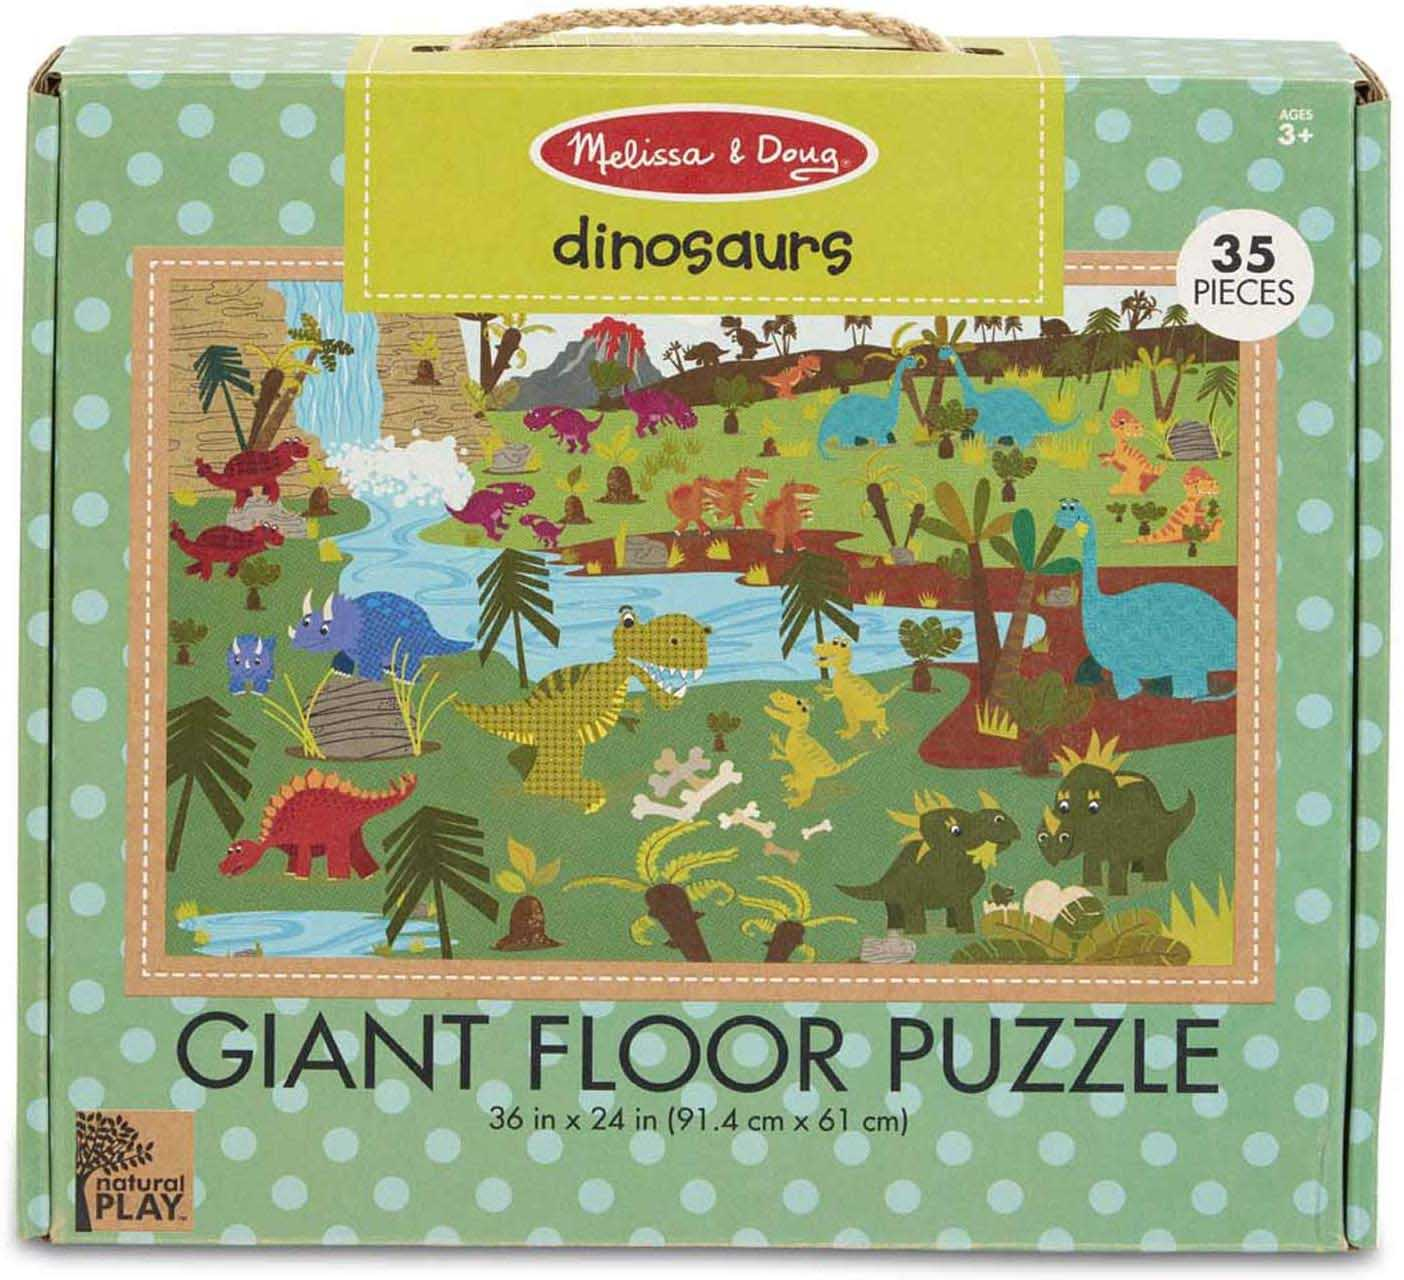 Green Start Giant Floor Puzzle - Dinosaurs Dinosaurs Jigsaw Puzzle